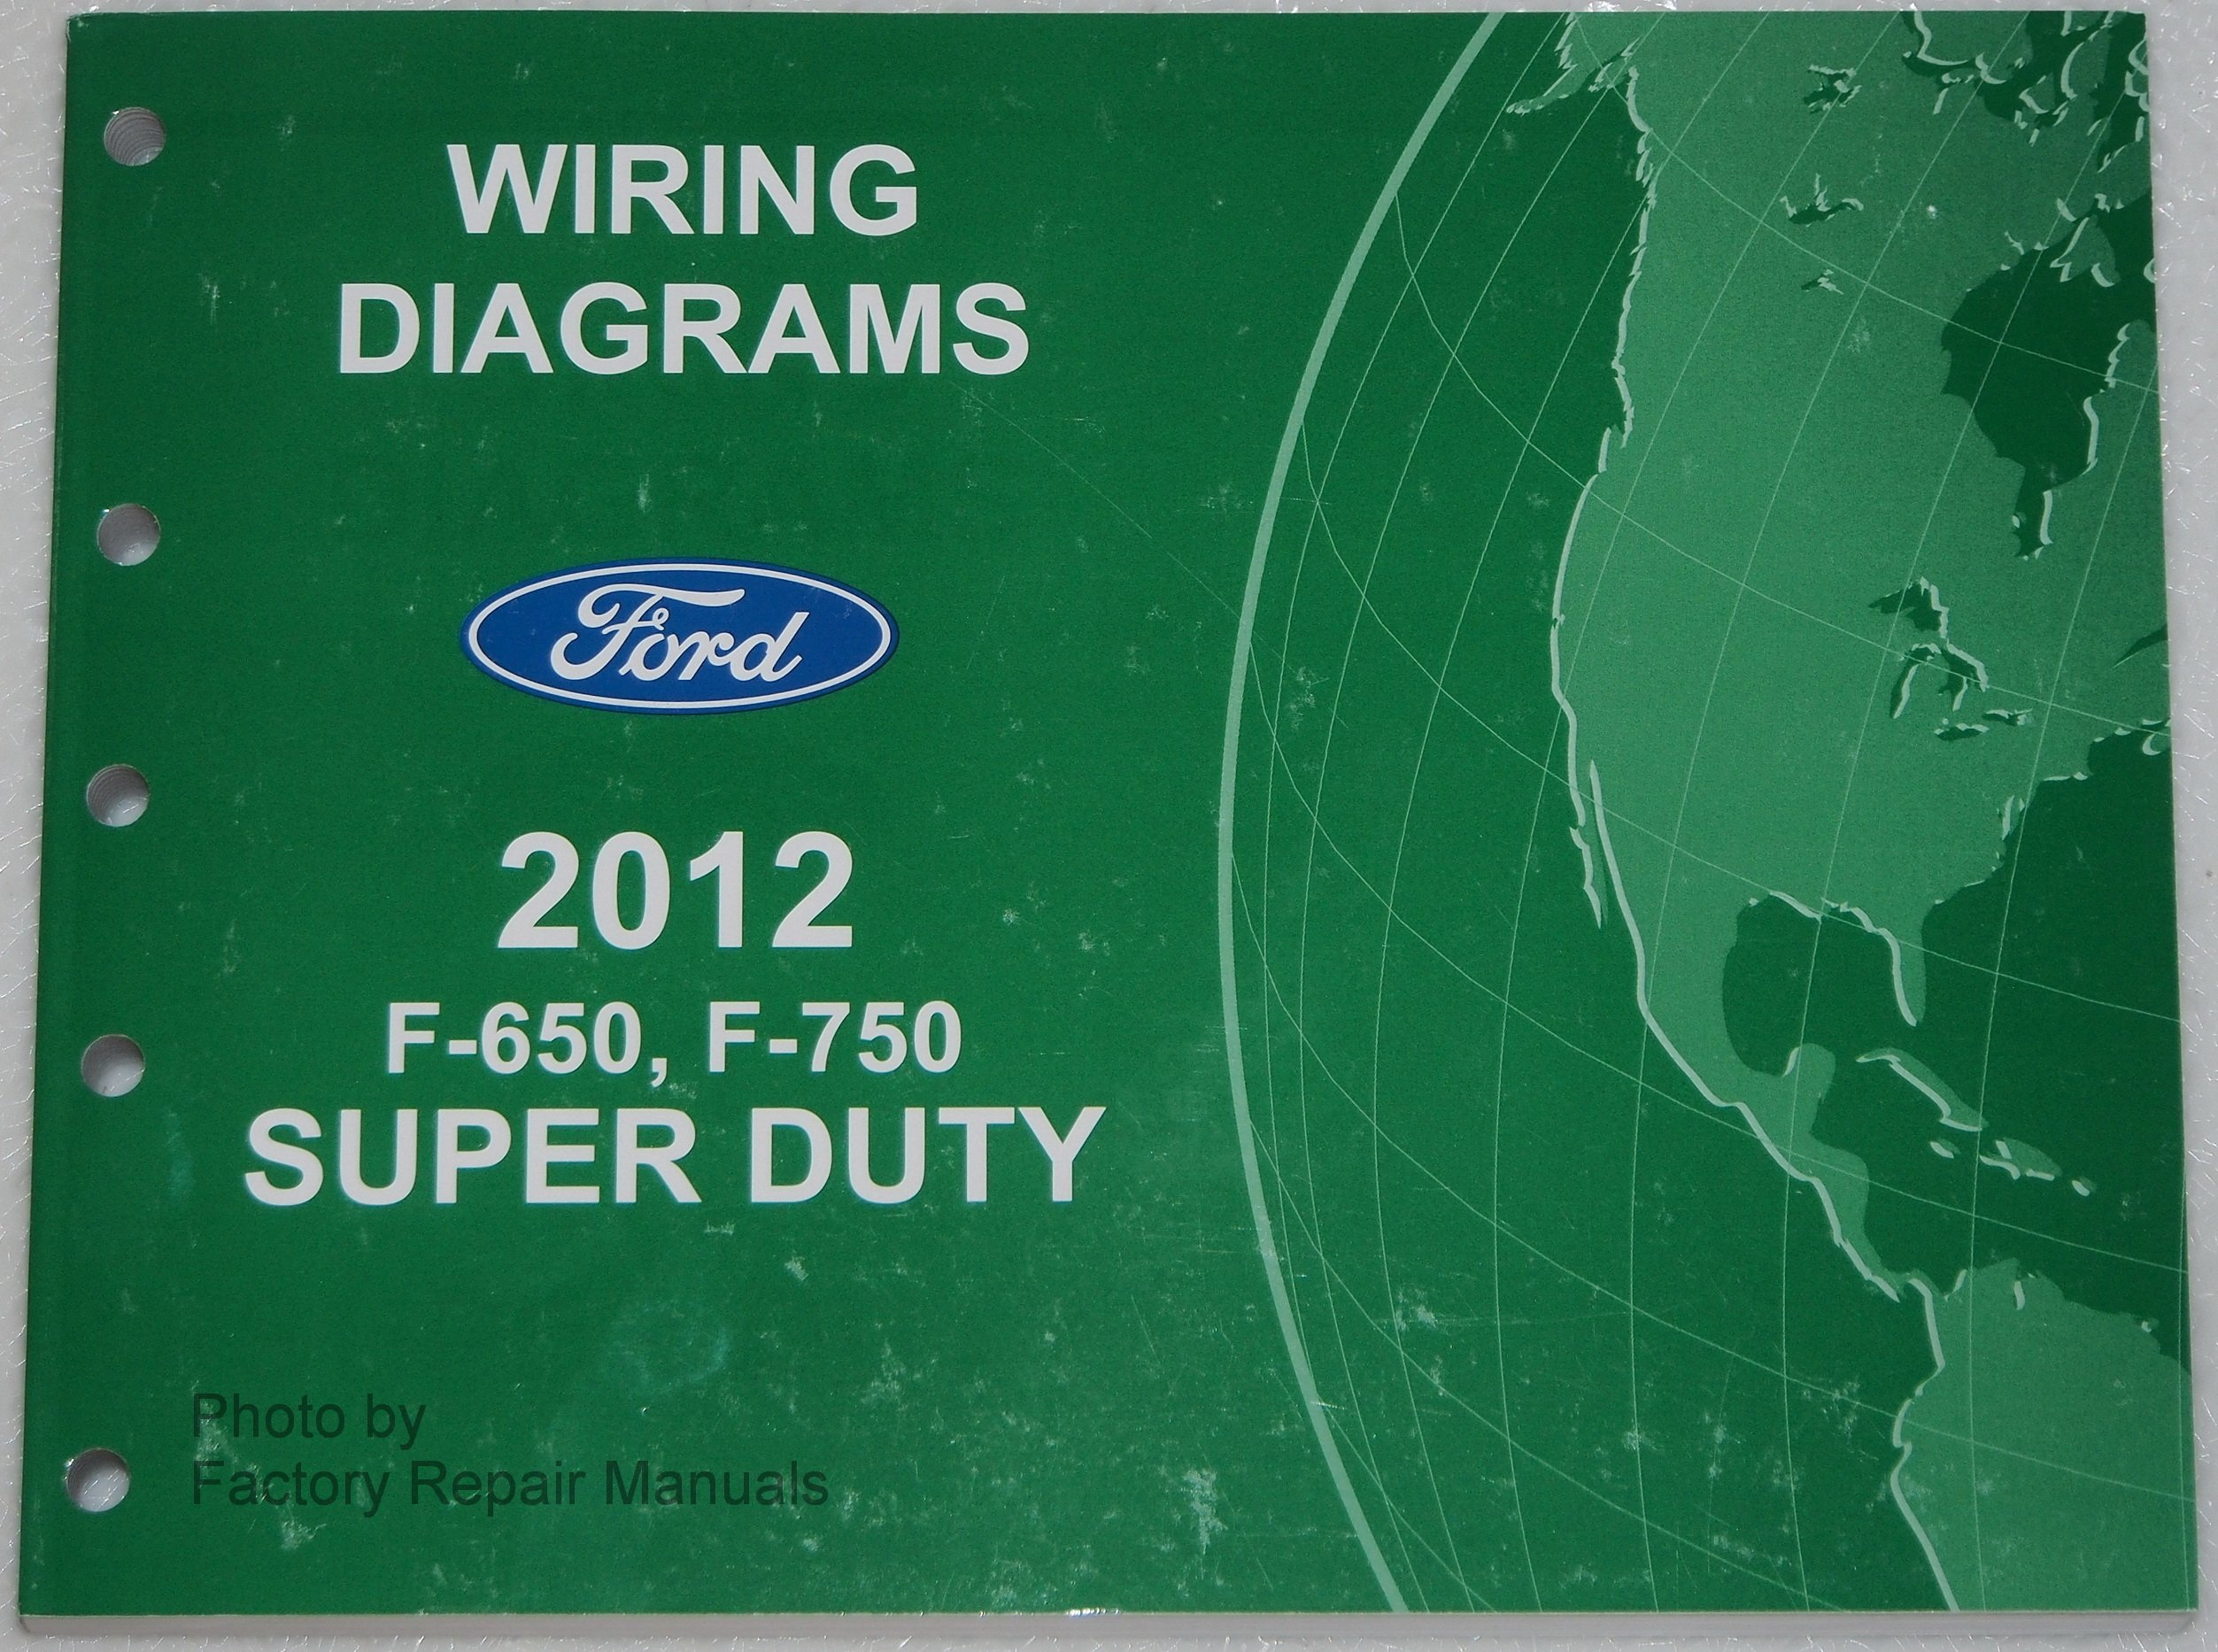 Ford F750 Wiring Diagram Electrical 2007 F250 V10 Transmission 2012 F650 Motor Company Amazon Com Books